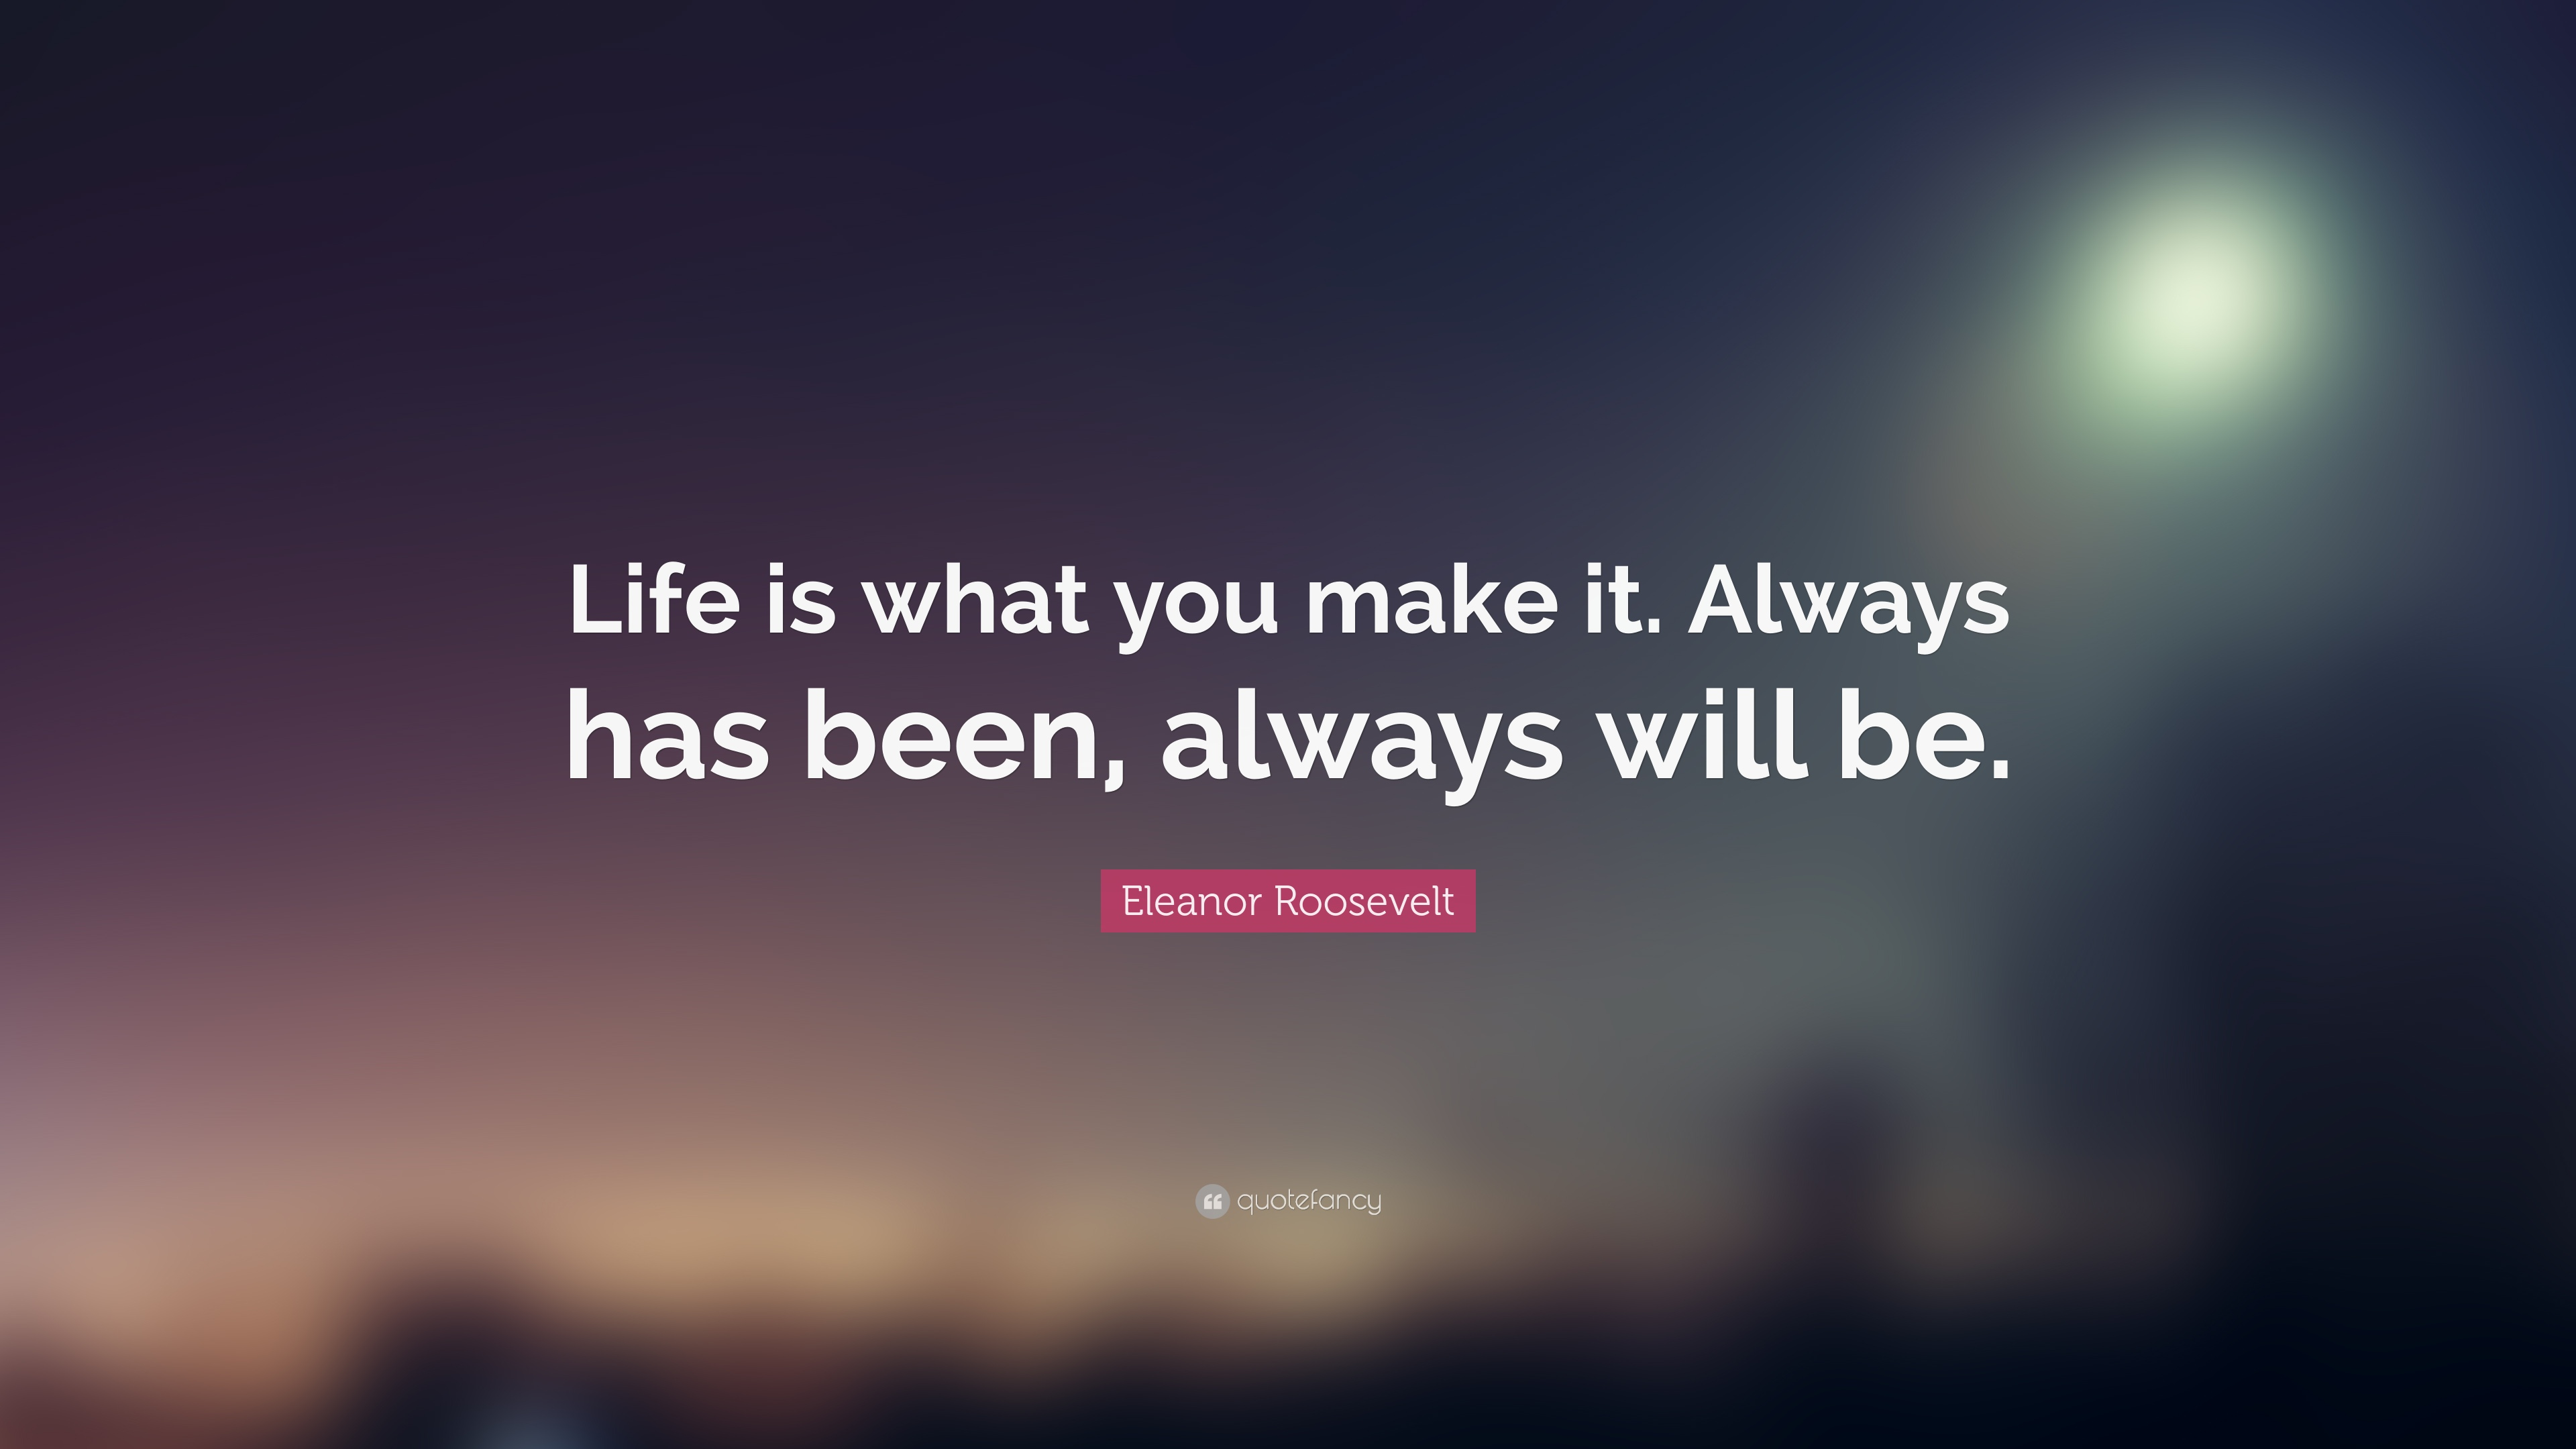 Eleanor Roosevelt Quote Life Is What You Make It Always Has Been